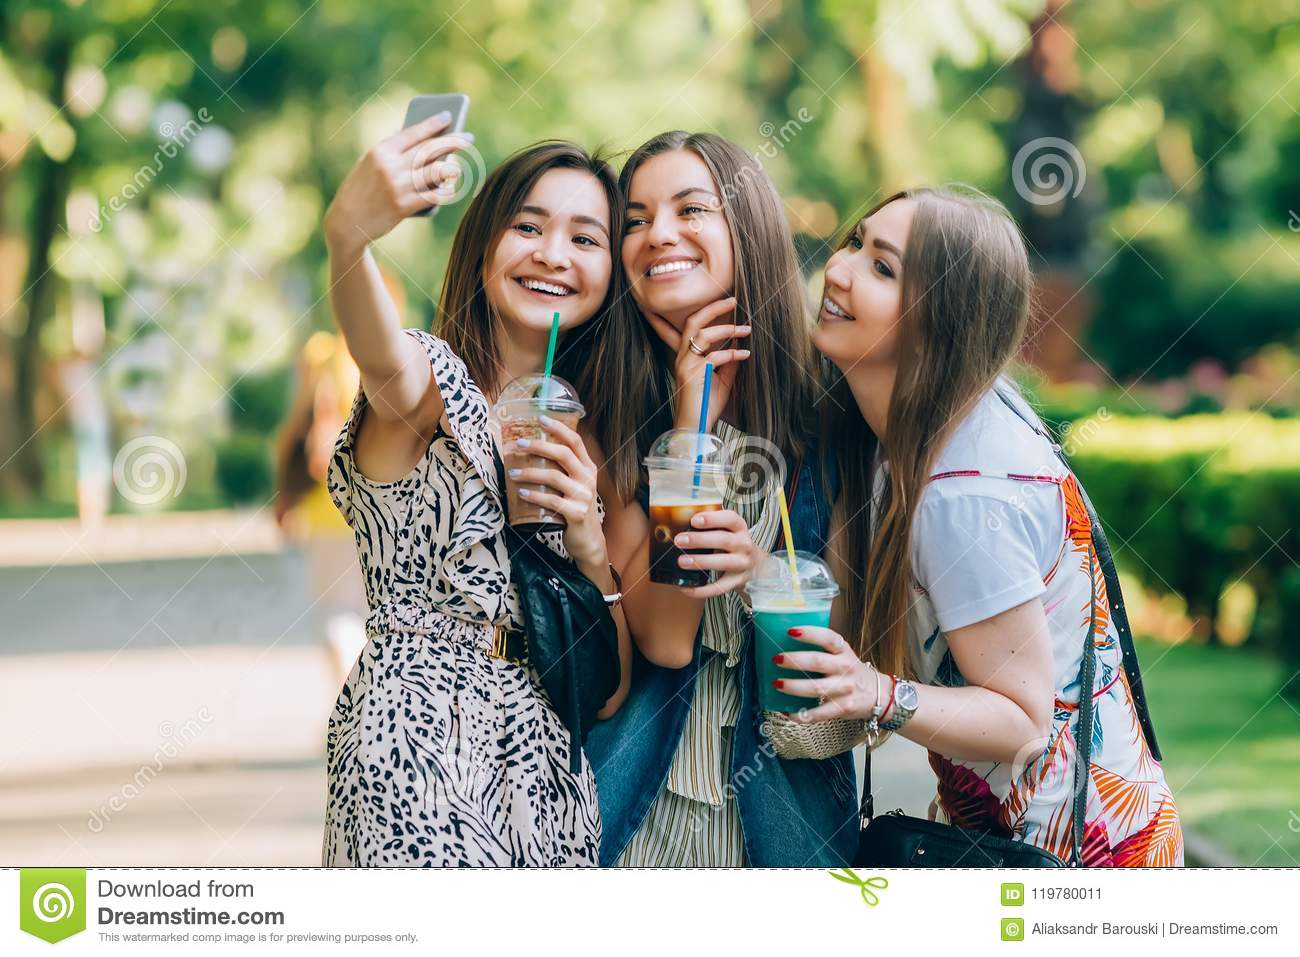 Happy friends in the park on a sunny day . Summer lifestyle portrait of three multiracial women enjoy nice day, holding